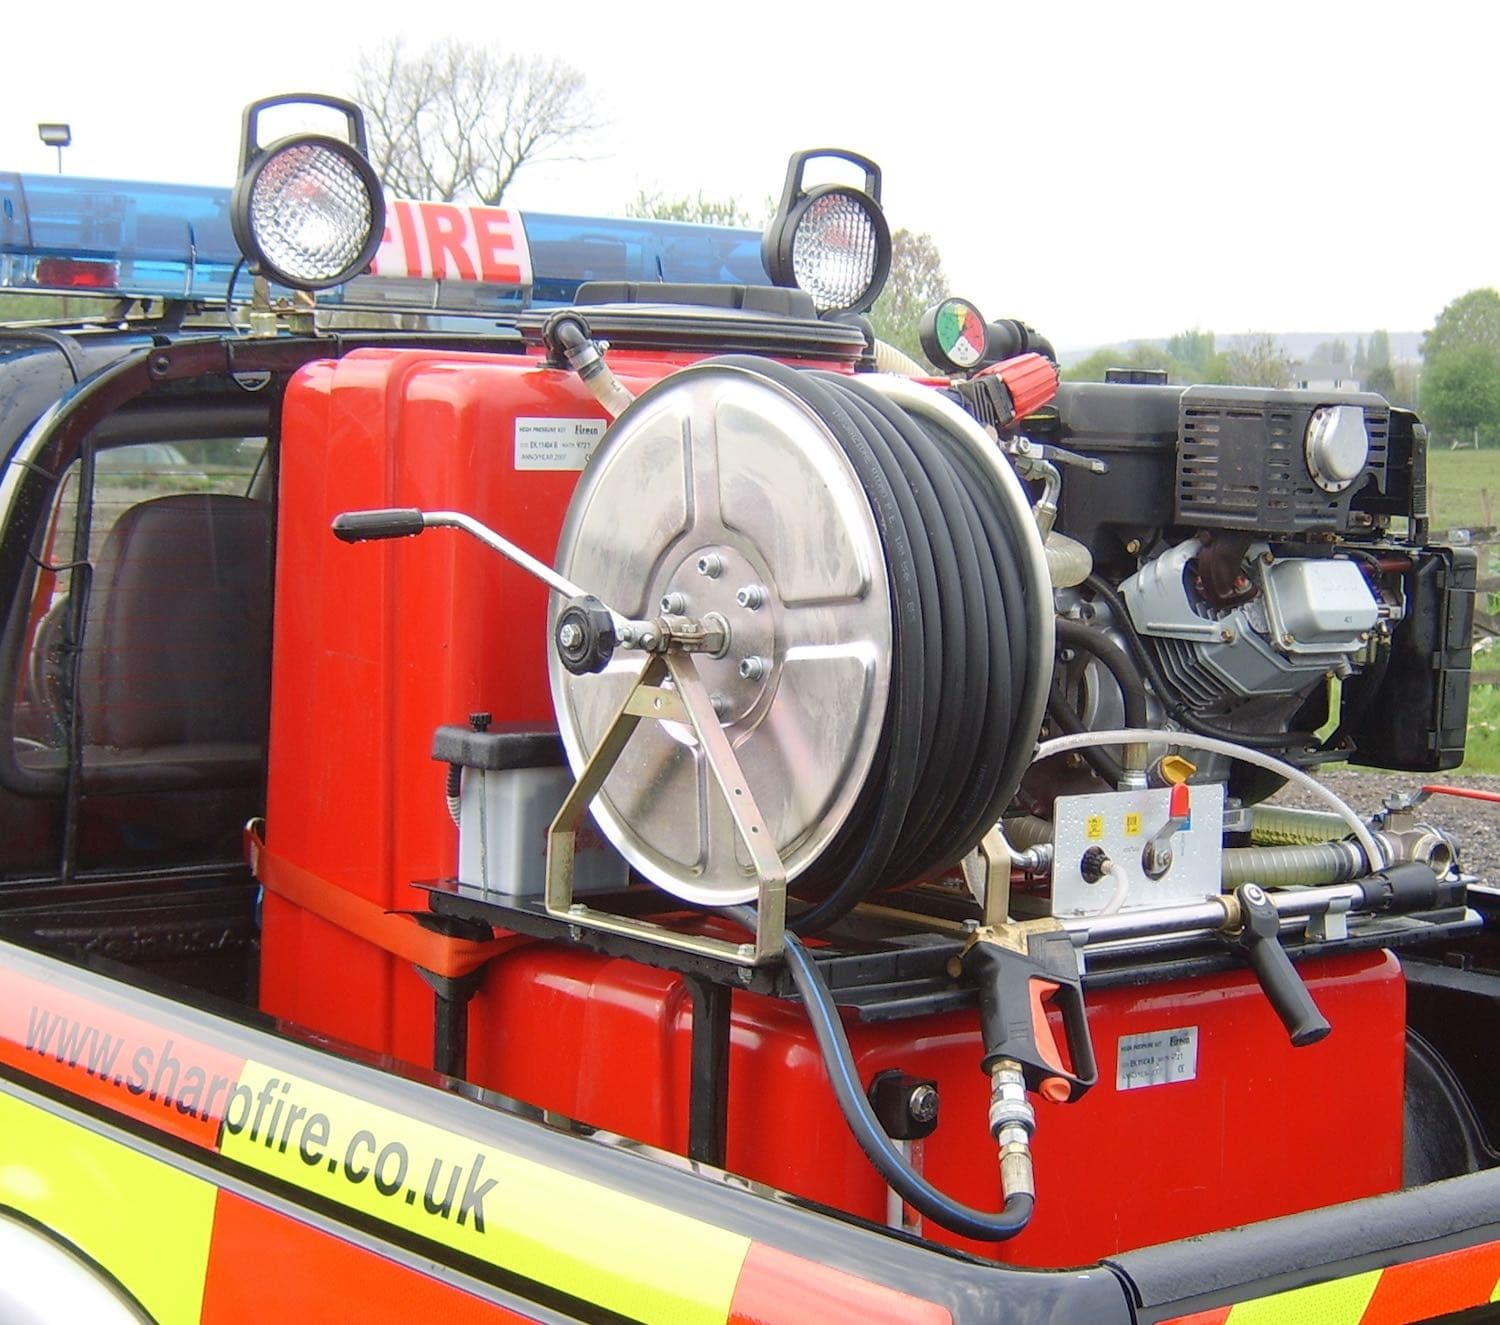 Tank Pump Sledges Sharp Fire and Rescue Service